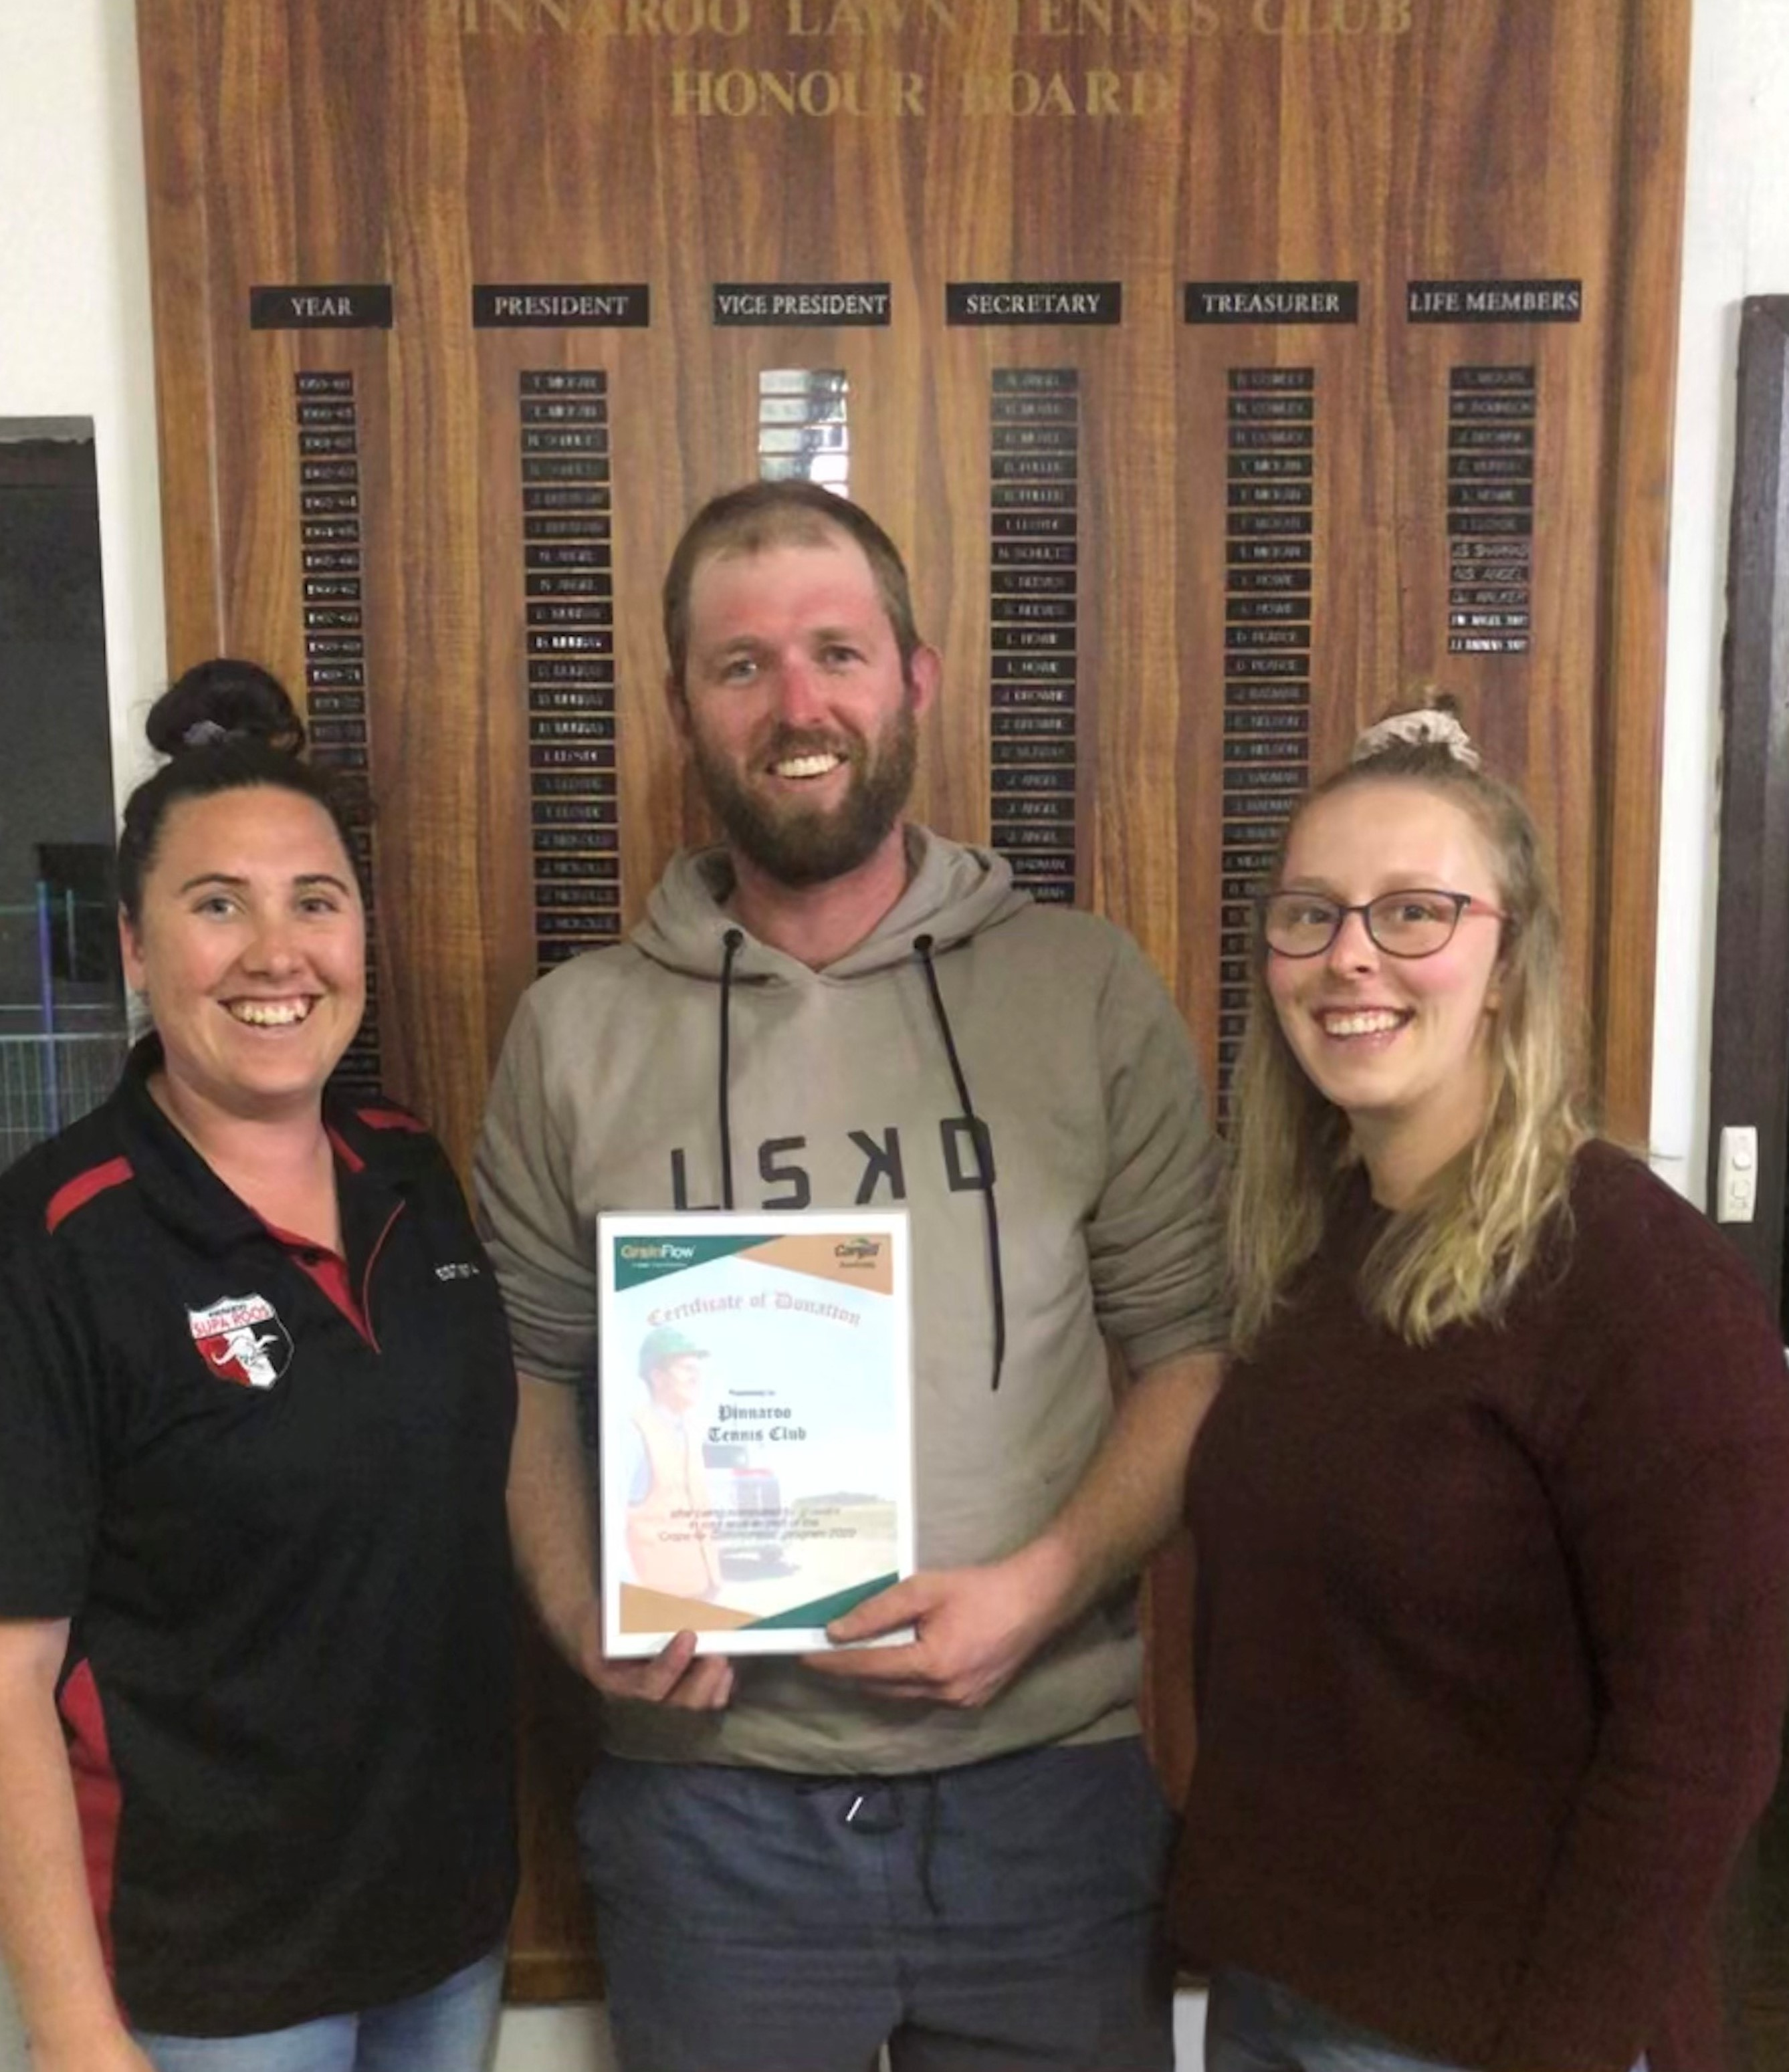 Joel (President), Steph (treasurer) and Georgia (committee member) Heinicke, in front of the life members board at the Pinnaroo Tennis Club